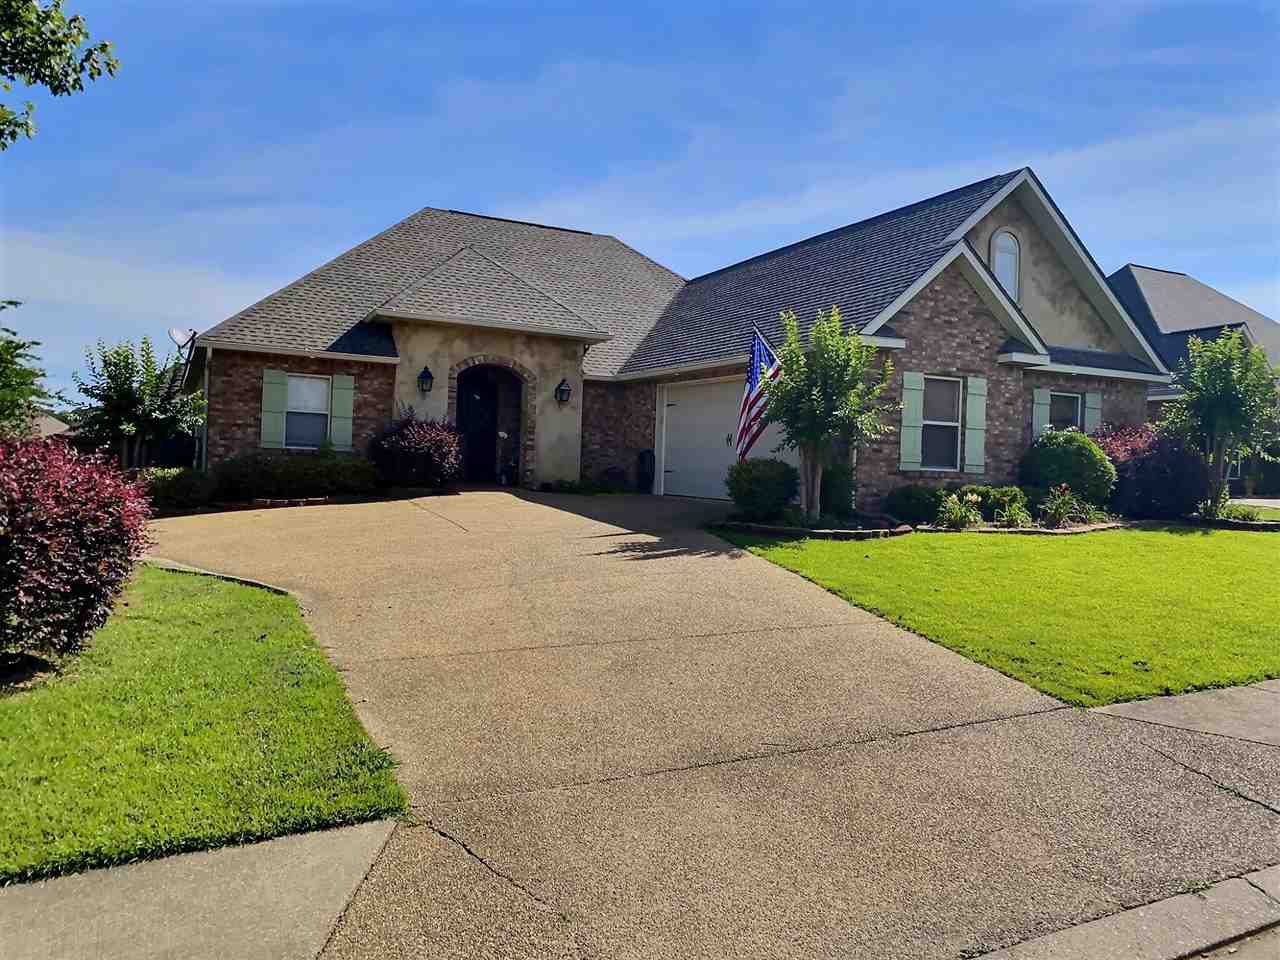 507 SPRINGHILL CROSSING   Brandon MS 39047 - Mississippi property for sale